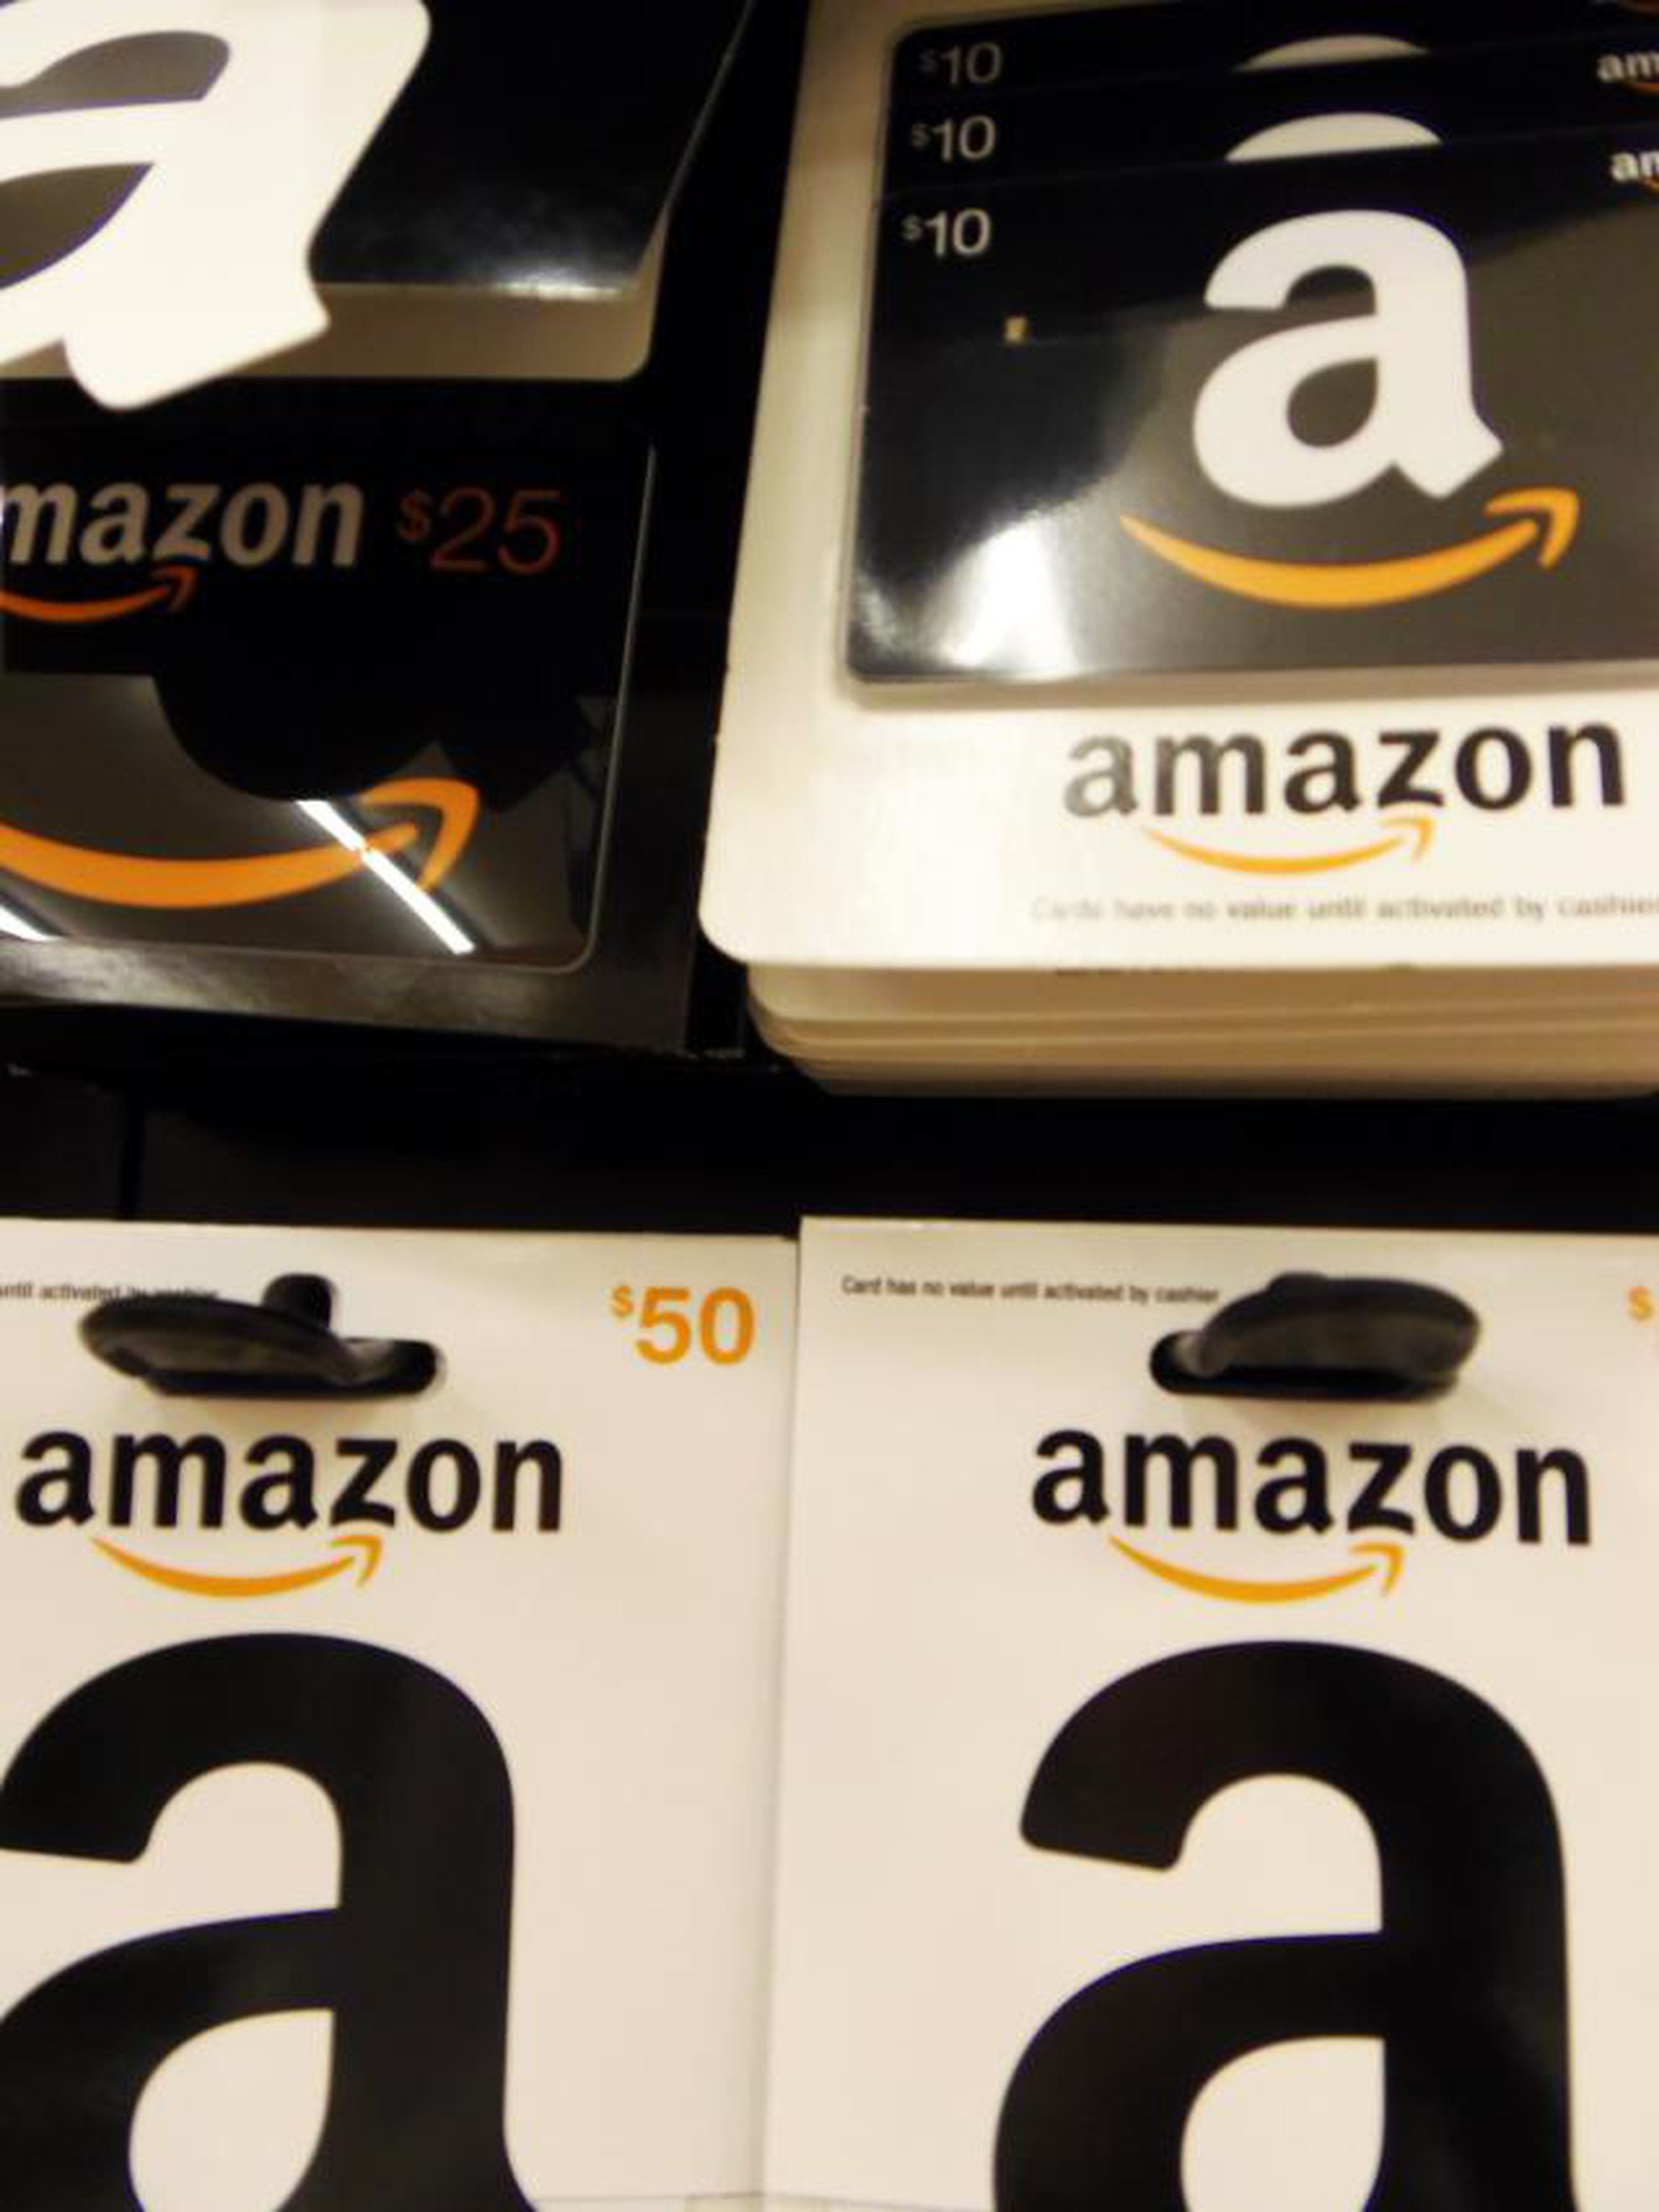 11 Ways You Can Score Free Amazon Gift Cards